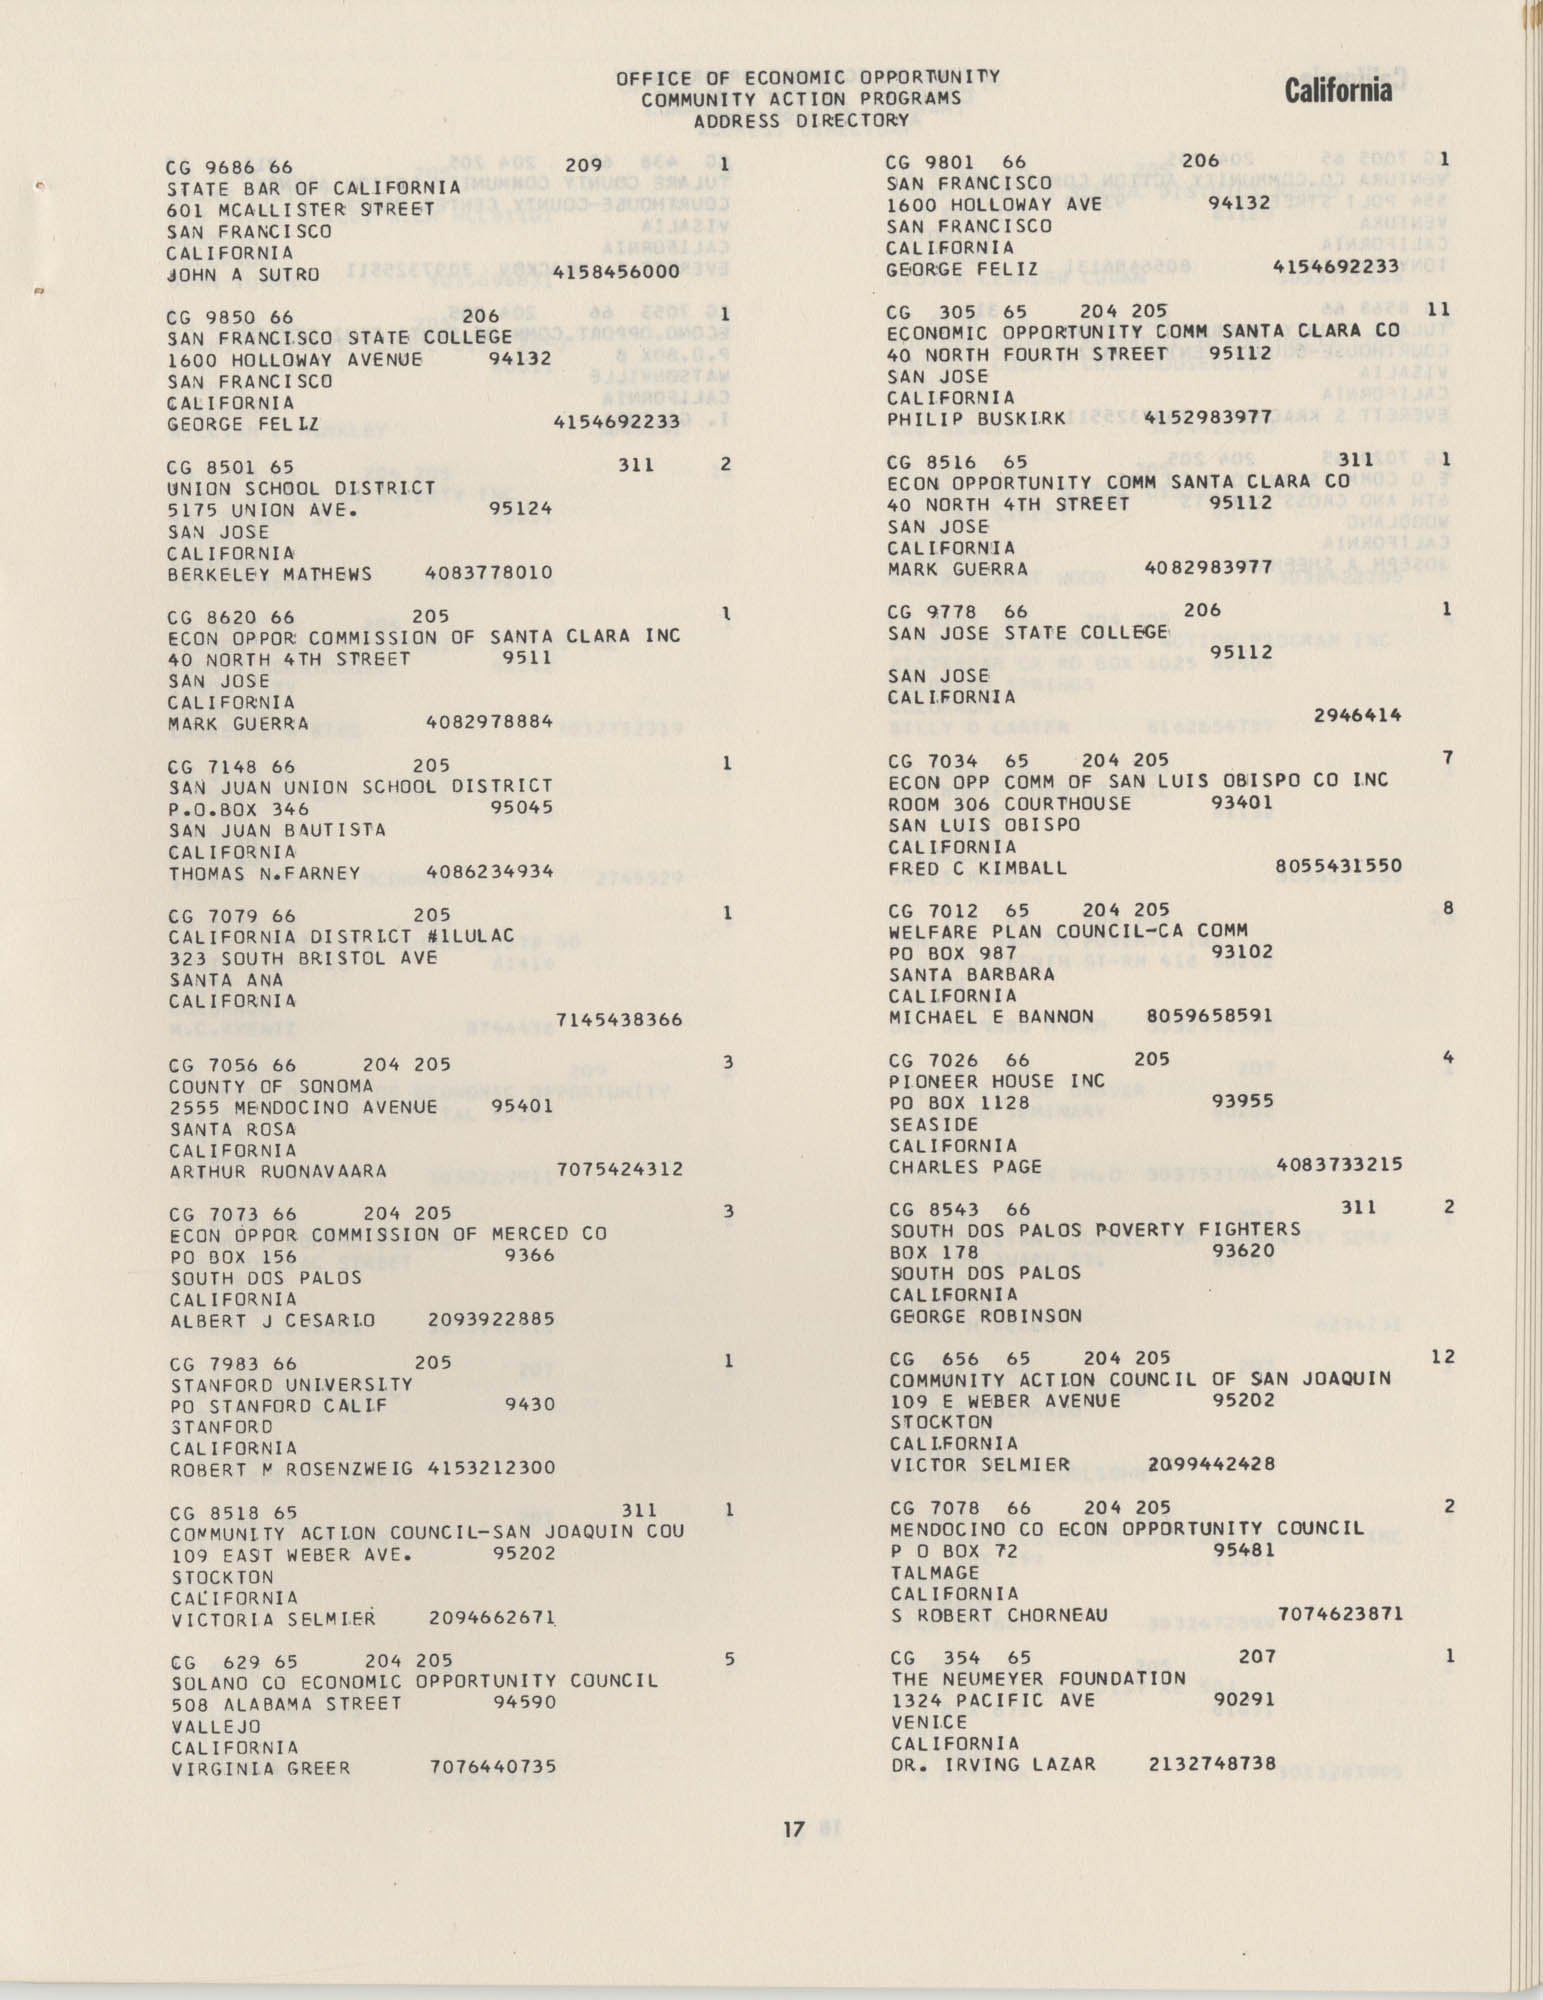 Community Action Programs Directory, June 15, 1966, Page 17